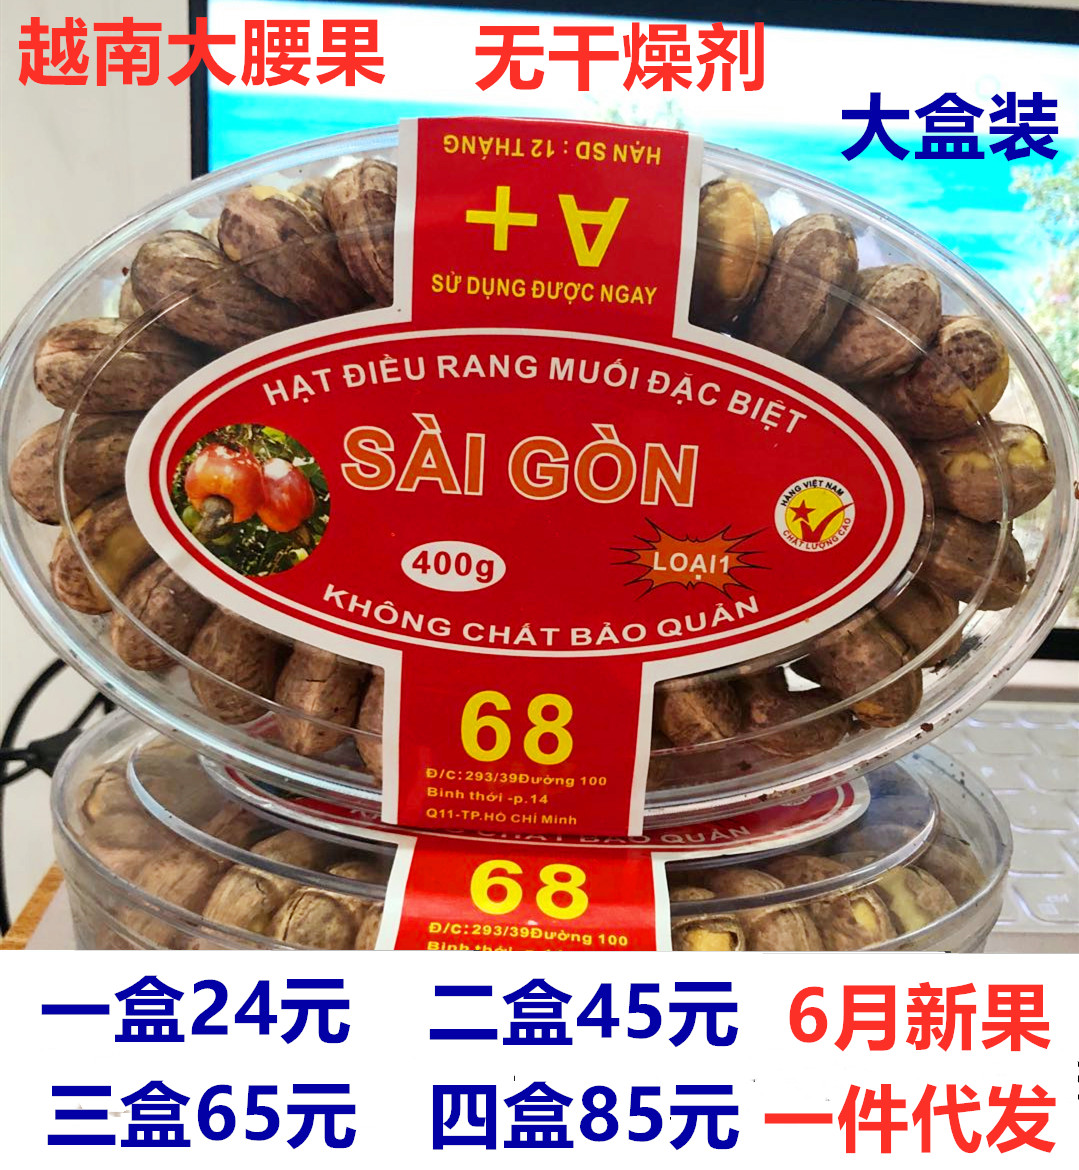 Vietnamese cashew fruit baked in salt with skin, imported cashew fruit red label, 4 boxes of nuts, dried fruit, special snacks package